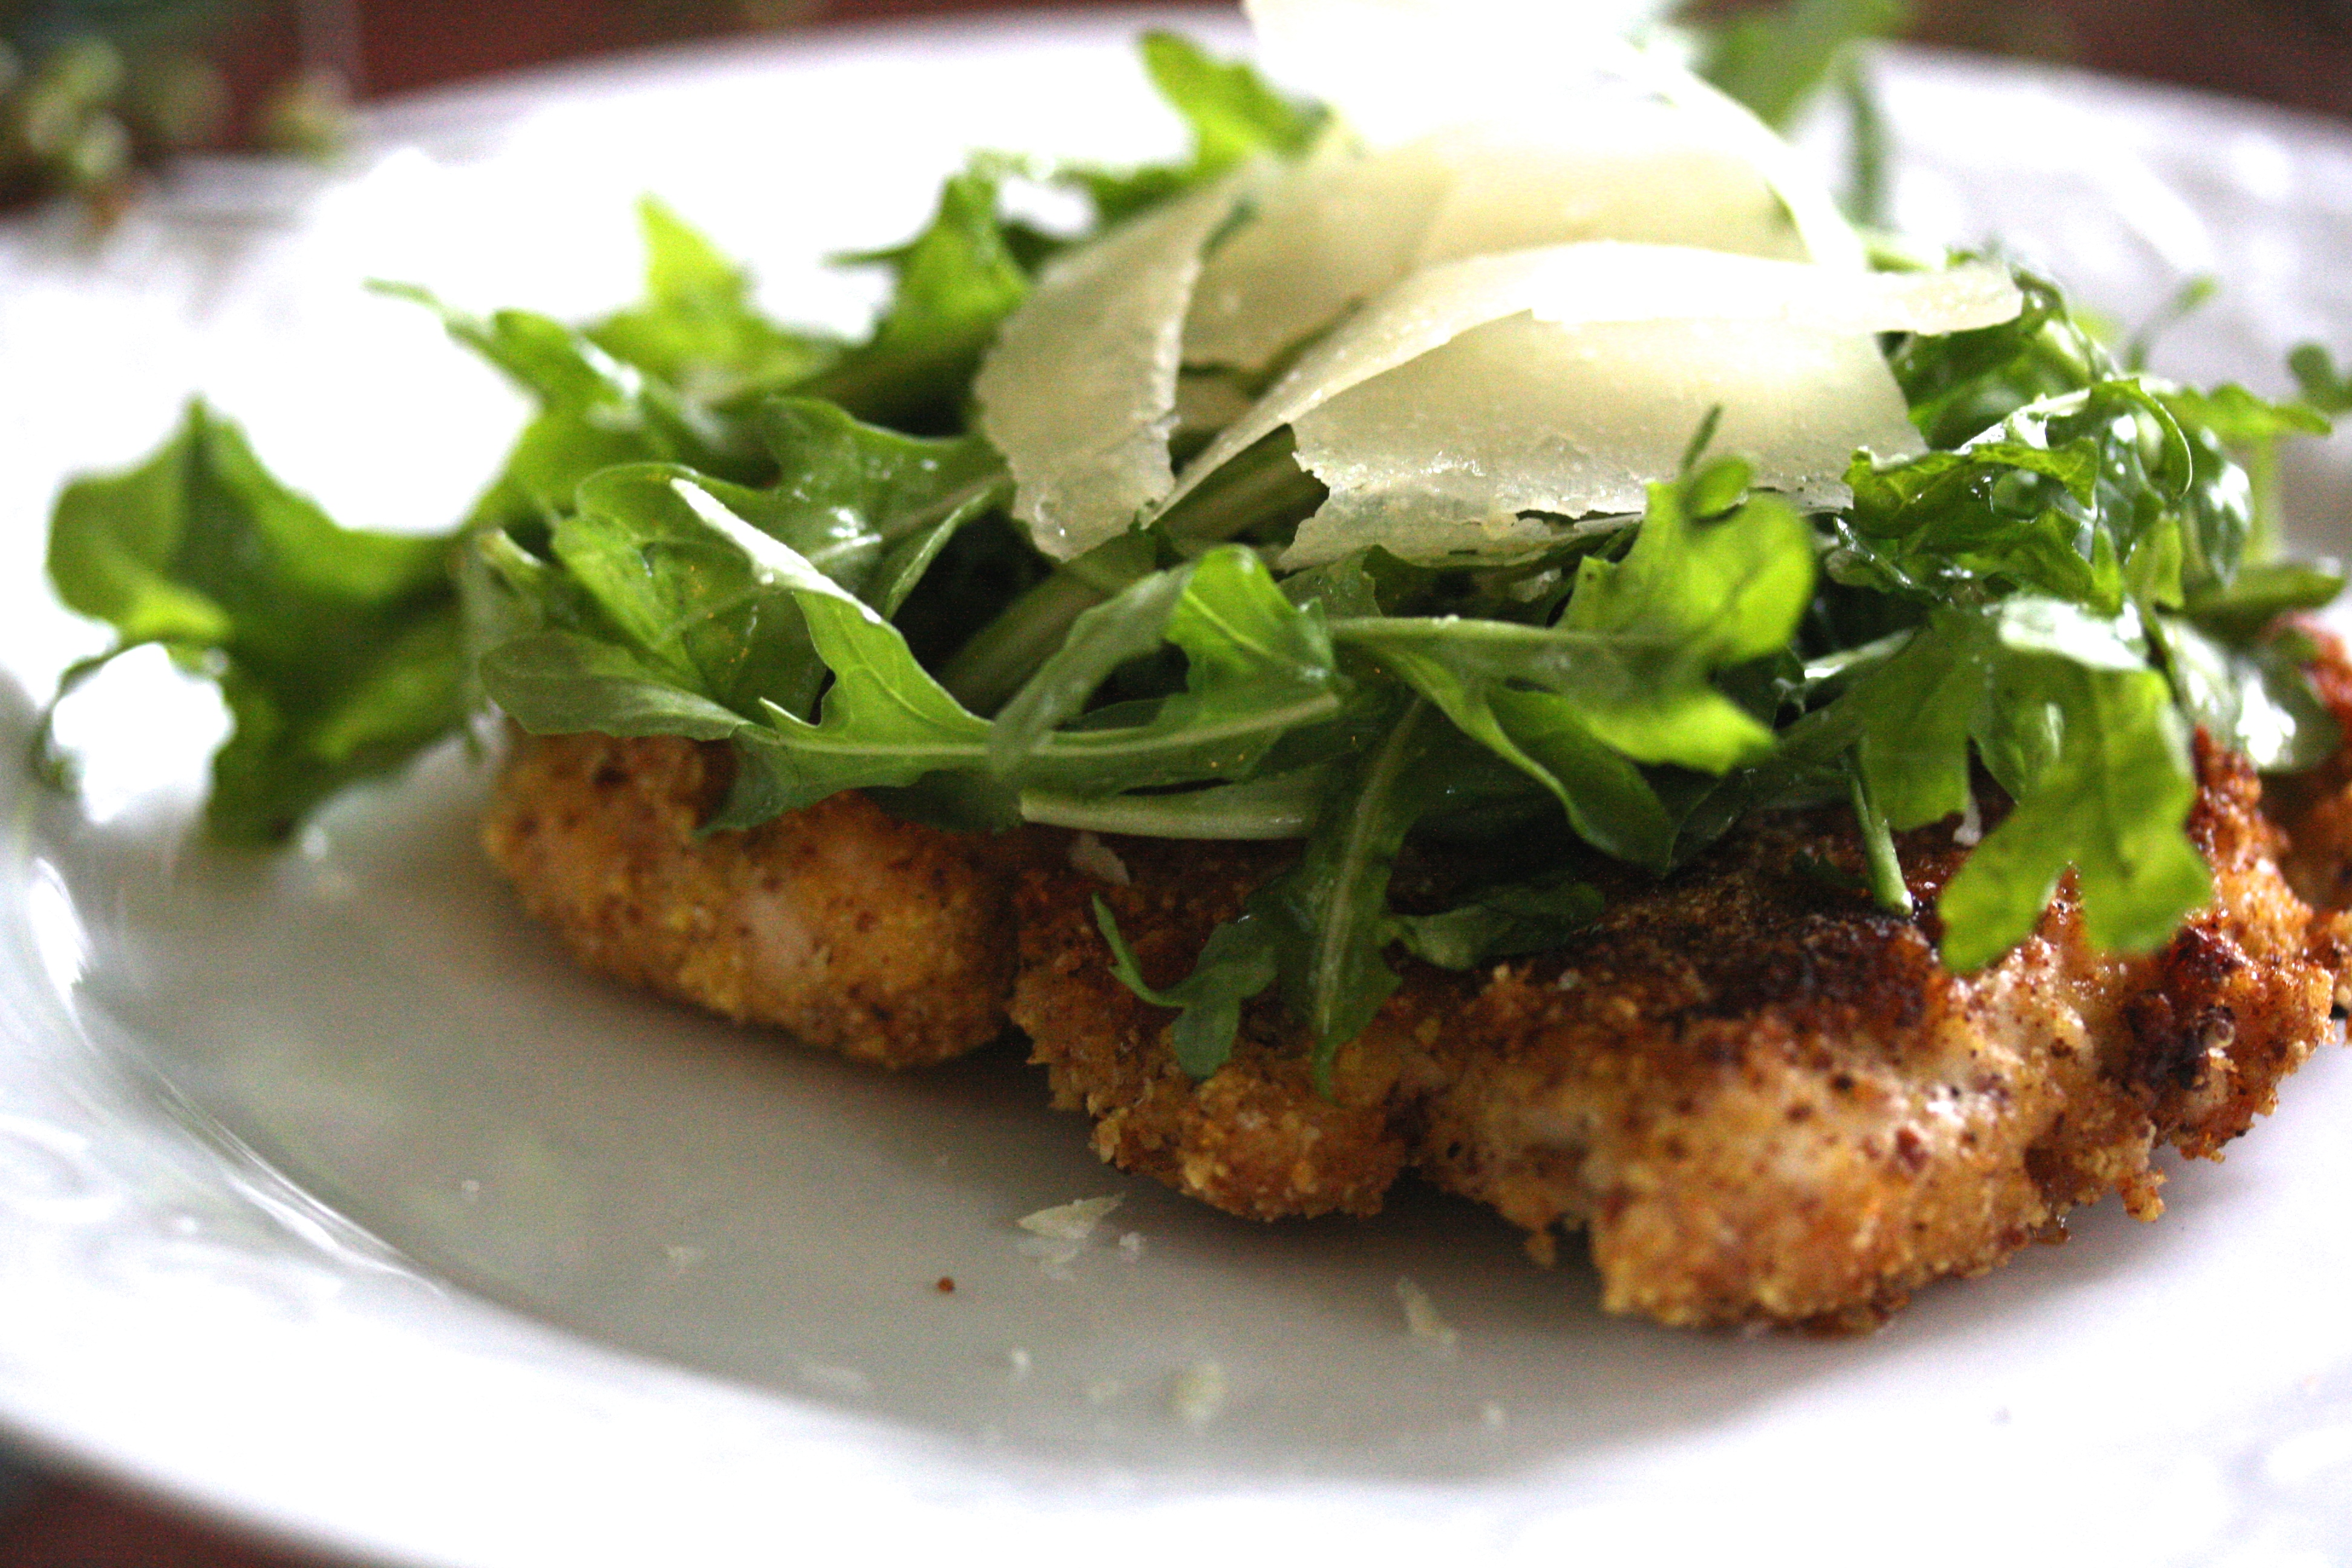 Parmesan Chicken with Arugula Salad a.k.a Pounded Chicken